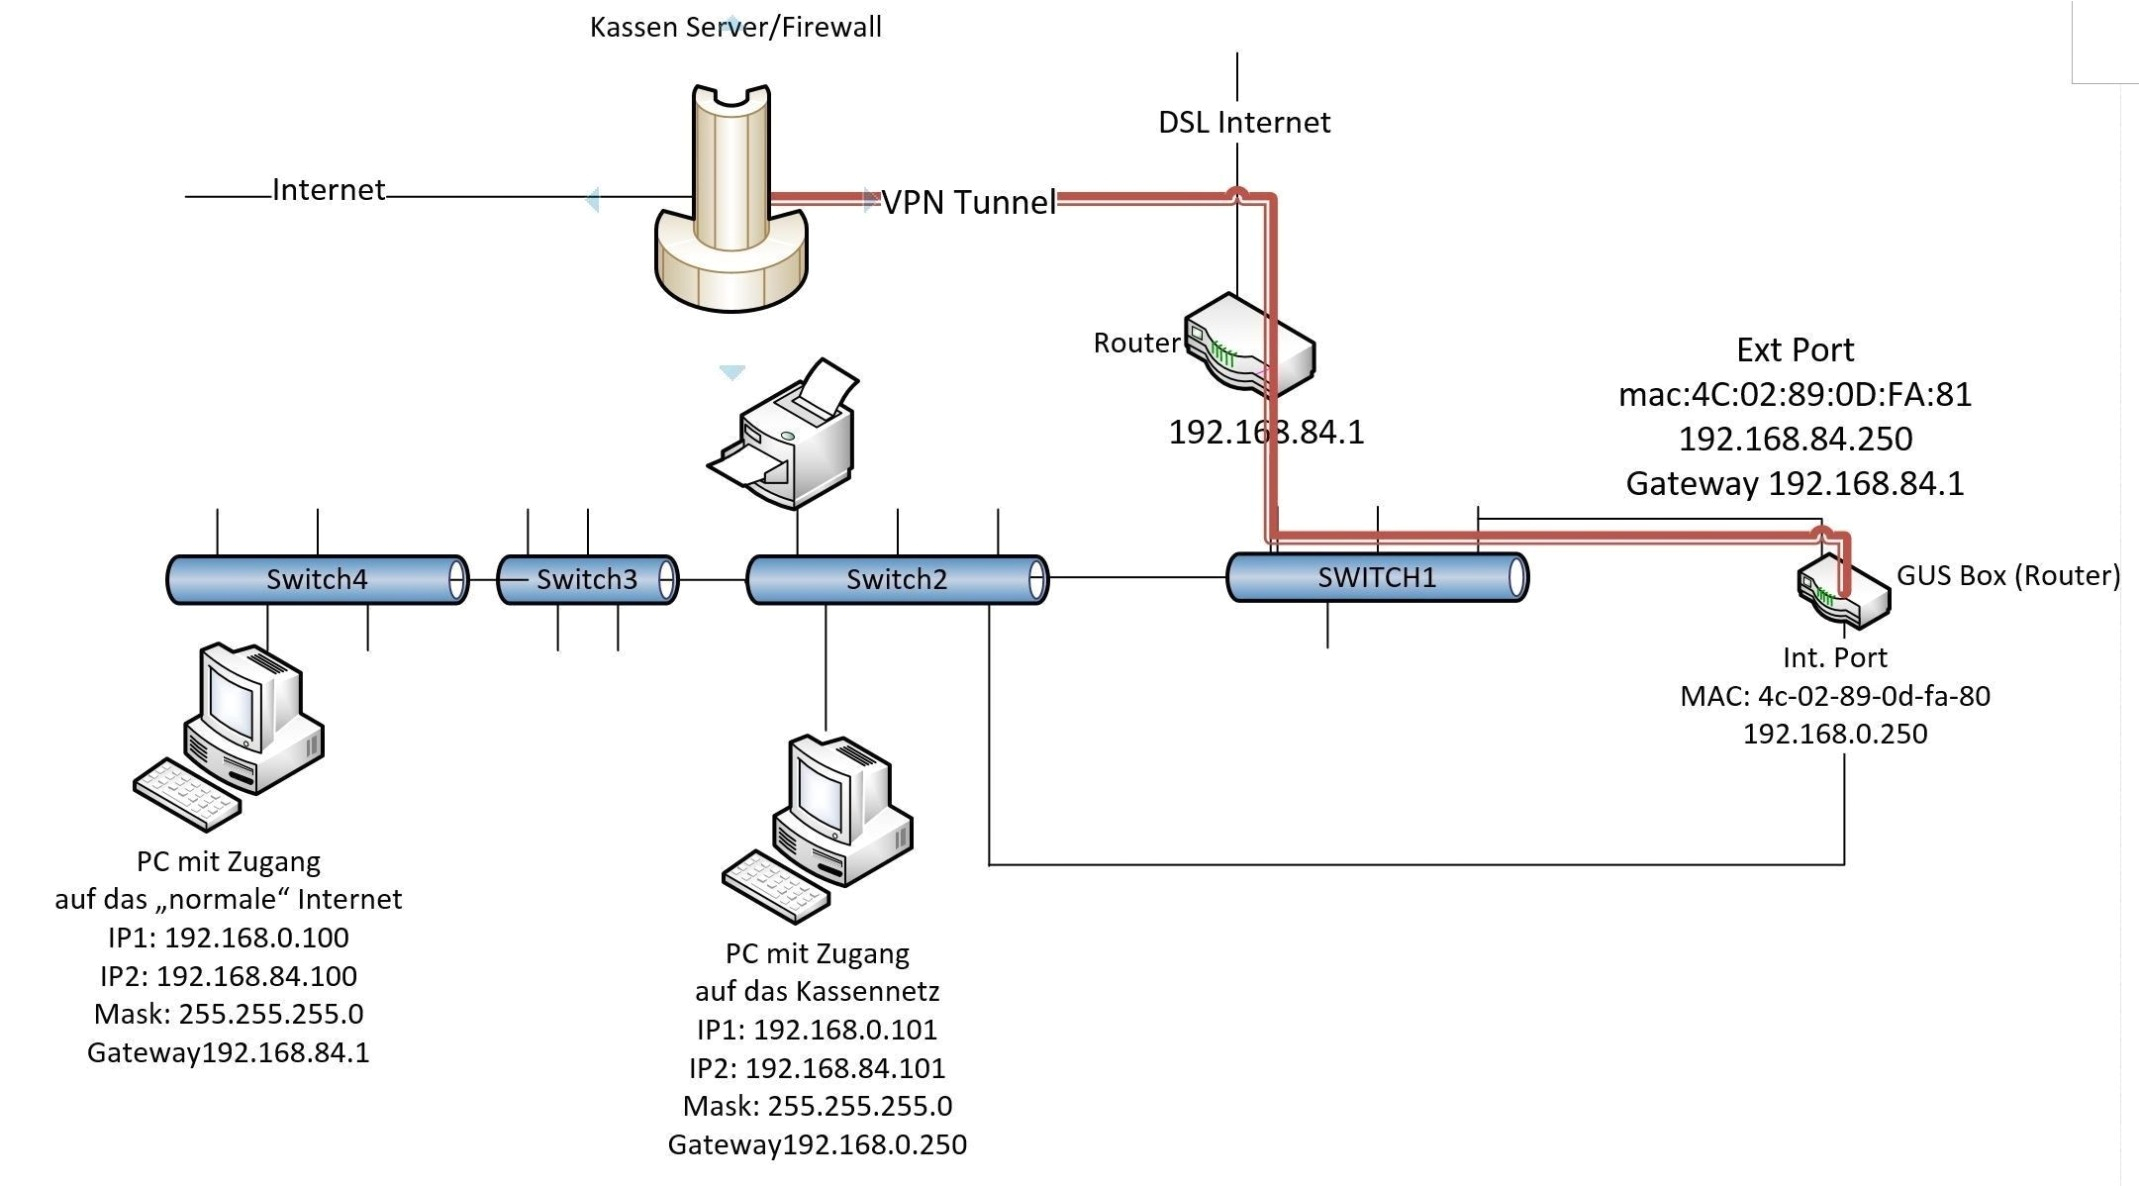 Home Network Wiring Diagram Home Network Layout Best Of Network Wiring Diagrams Rate Coil Wiring